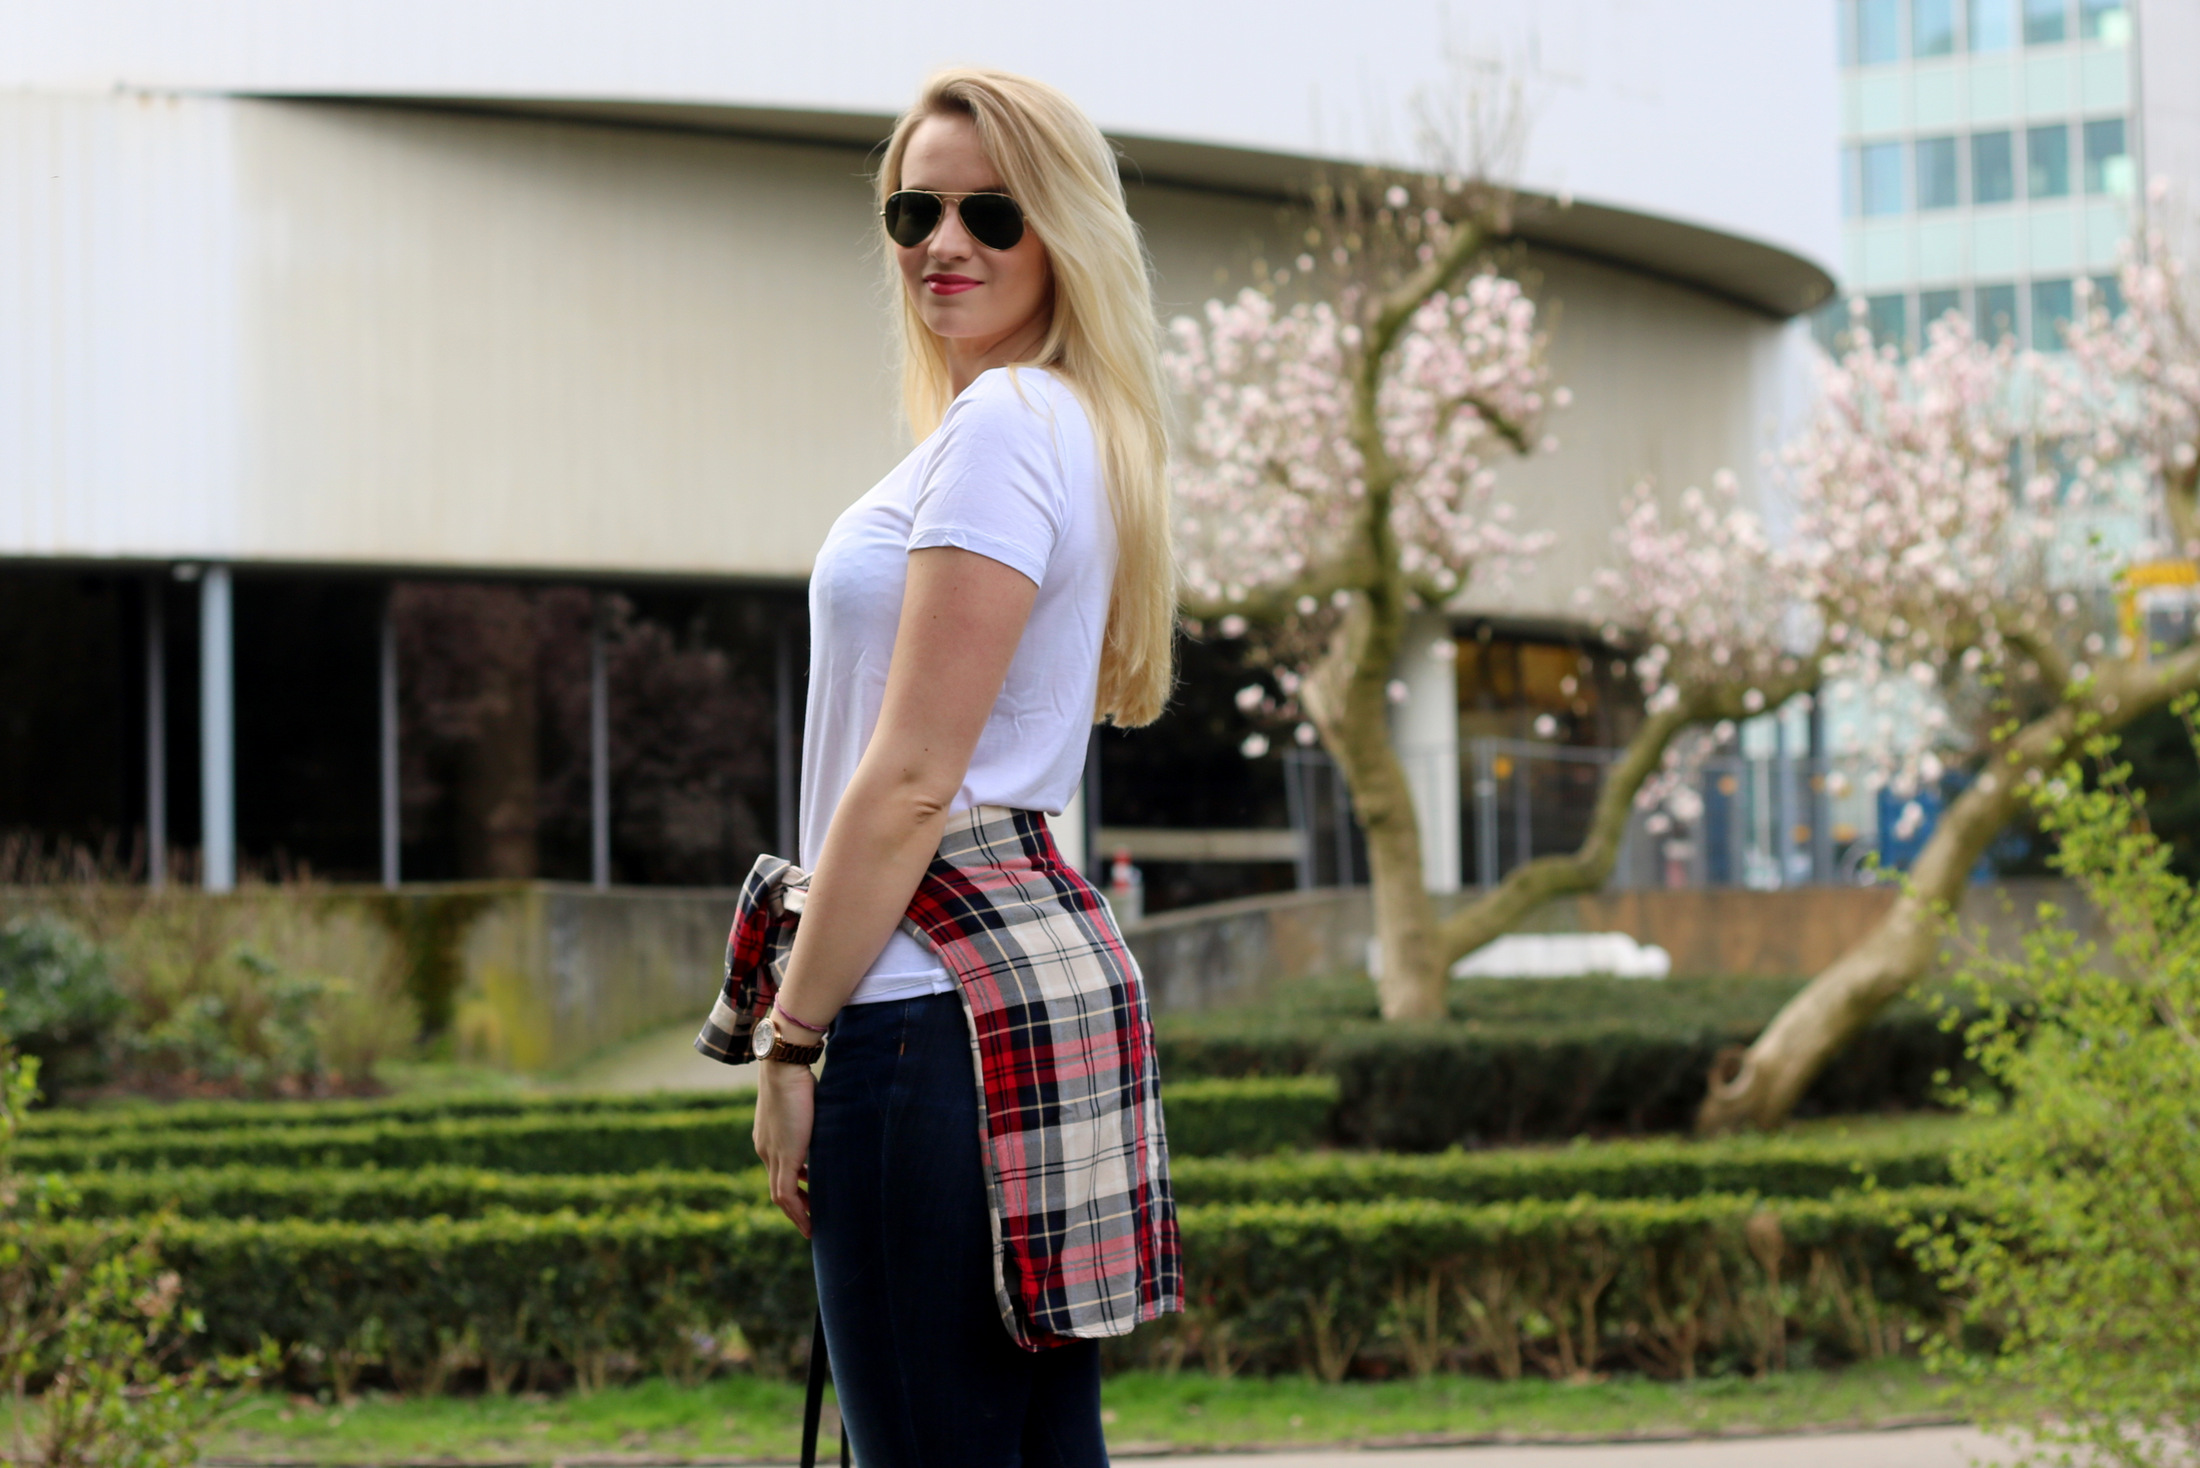 plain-shirt-white-tee-jeans-casual-look-outfit-ootd-blogger-mrsbrightside (2)